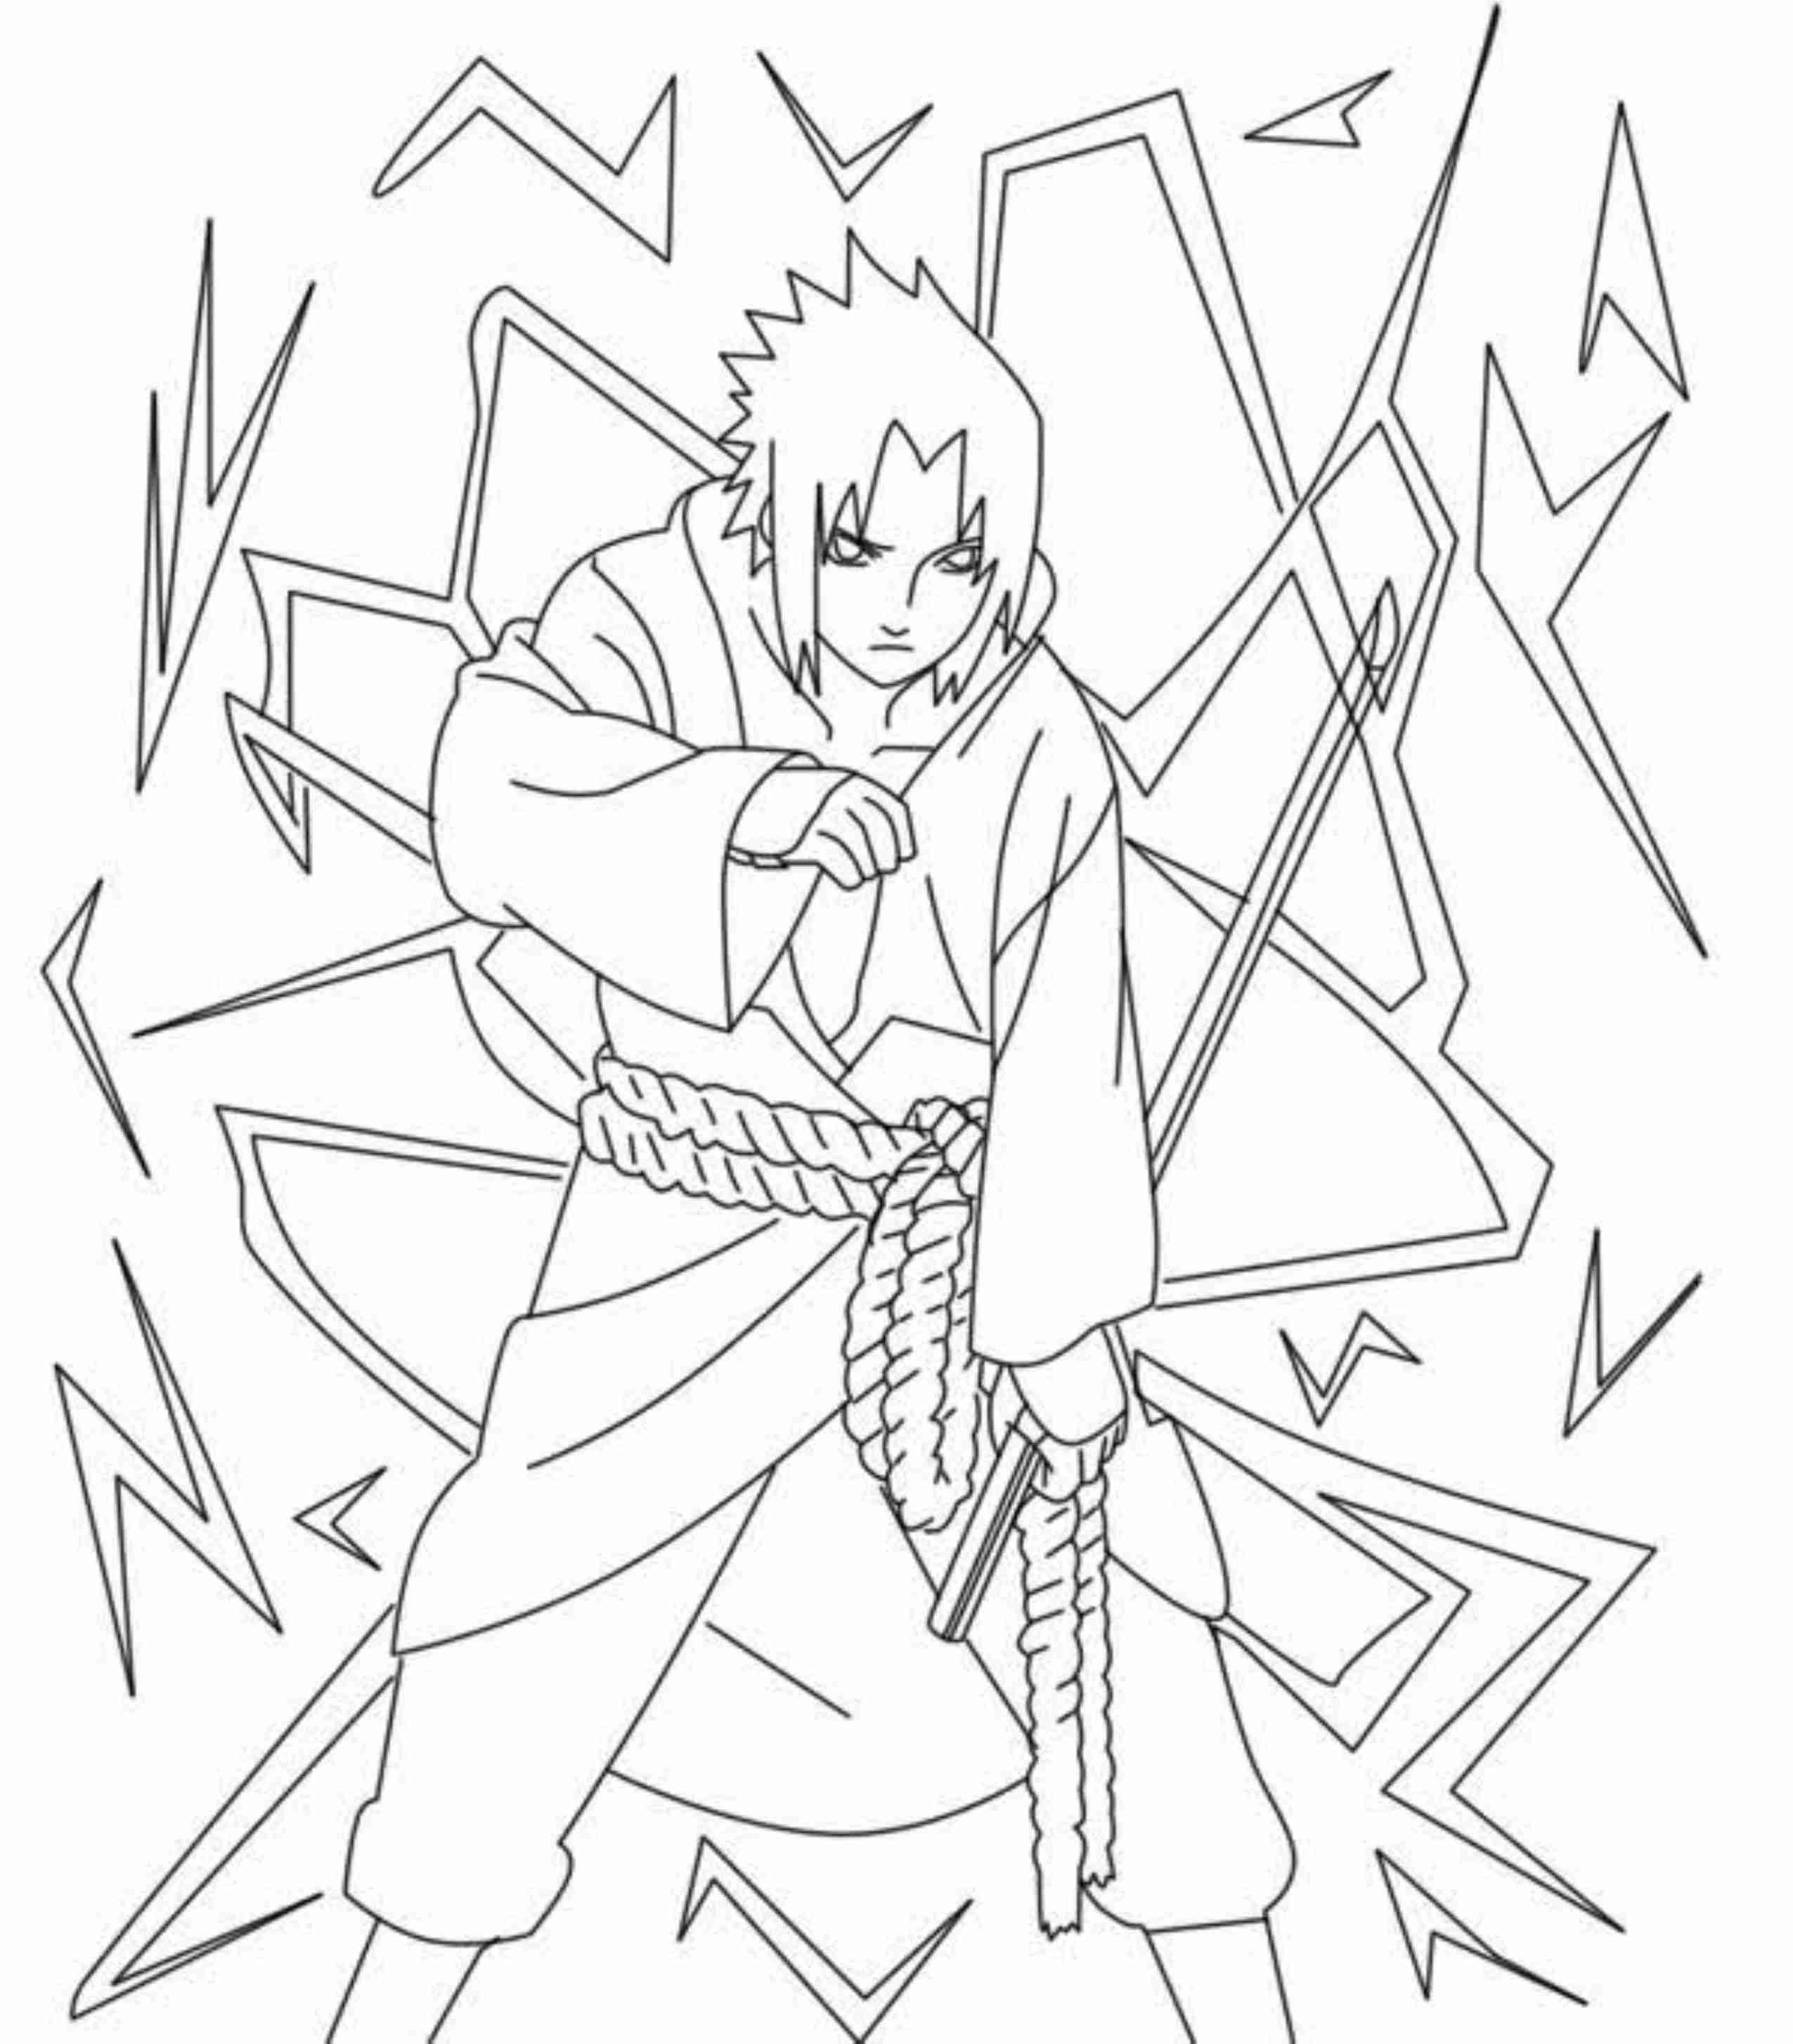 Naruto Sasuke Akatsuki Coloring Book Pages Bestappsforkids Com Coloring Pages Detailed Coloring Pages Fox Coloring Page